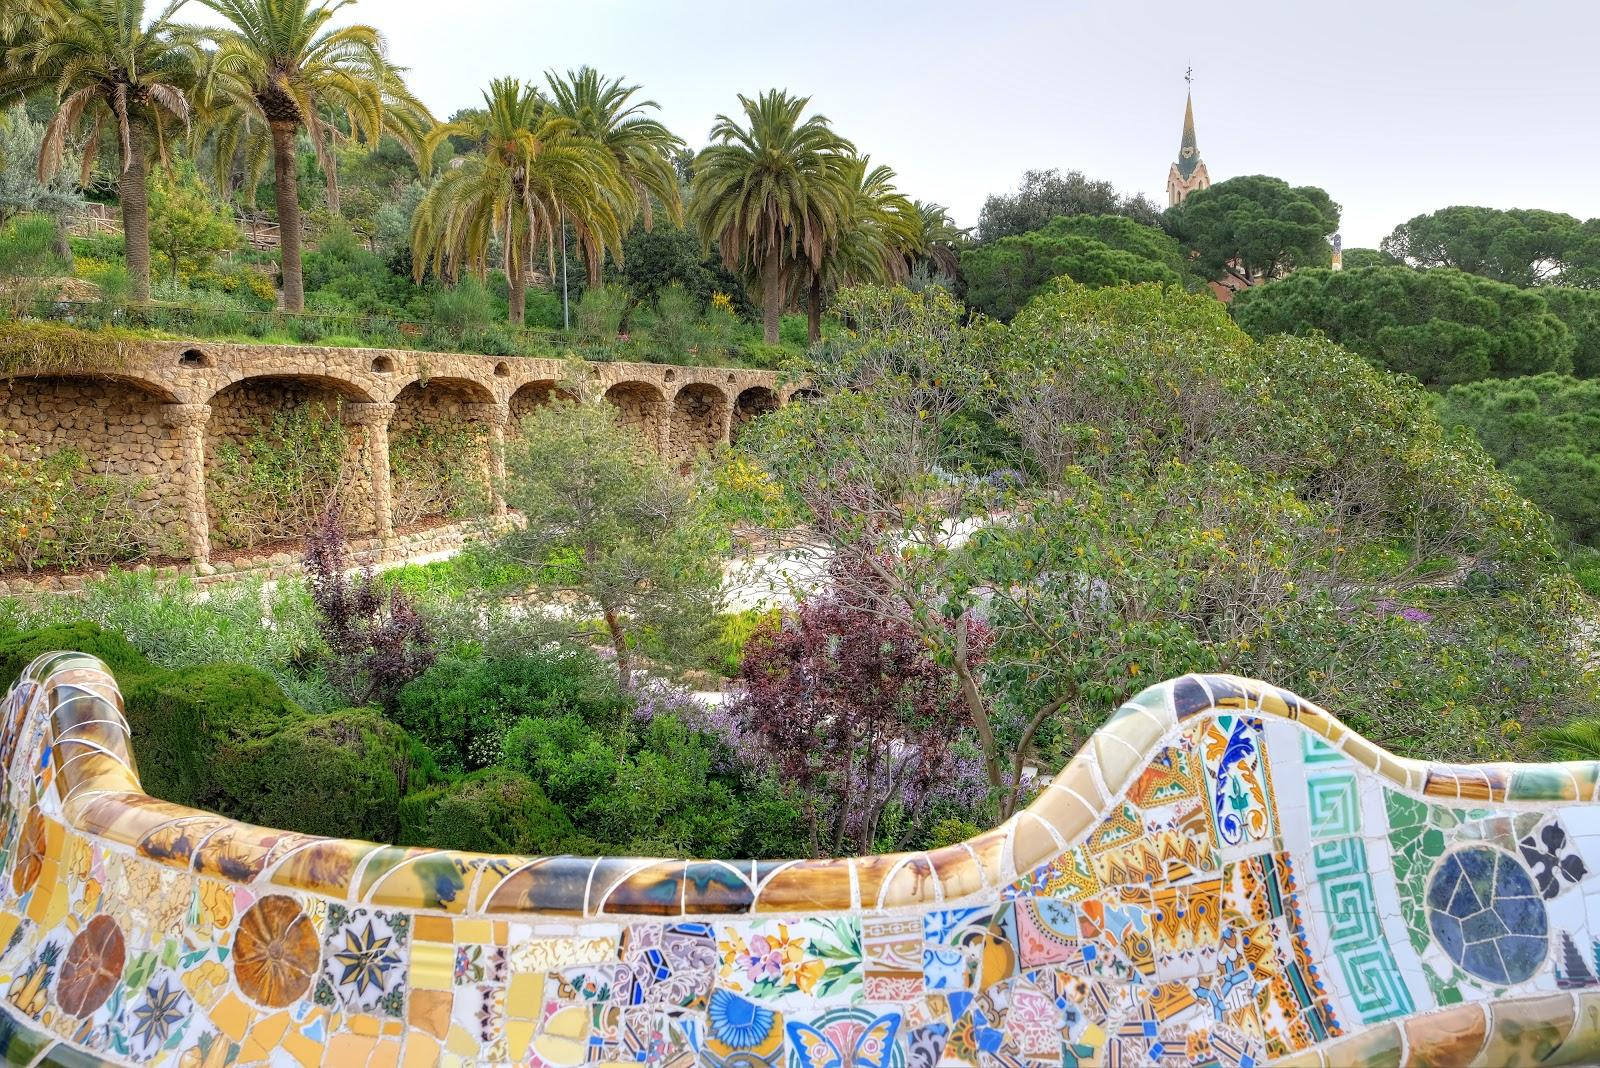 A view over the Austria Gardens in Park Guell.